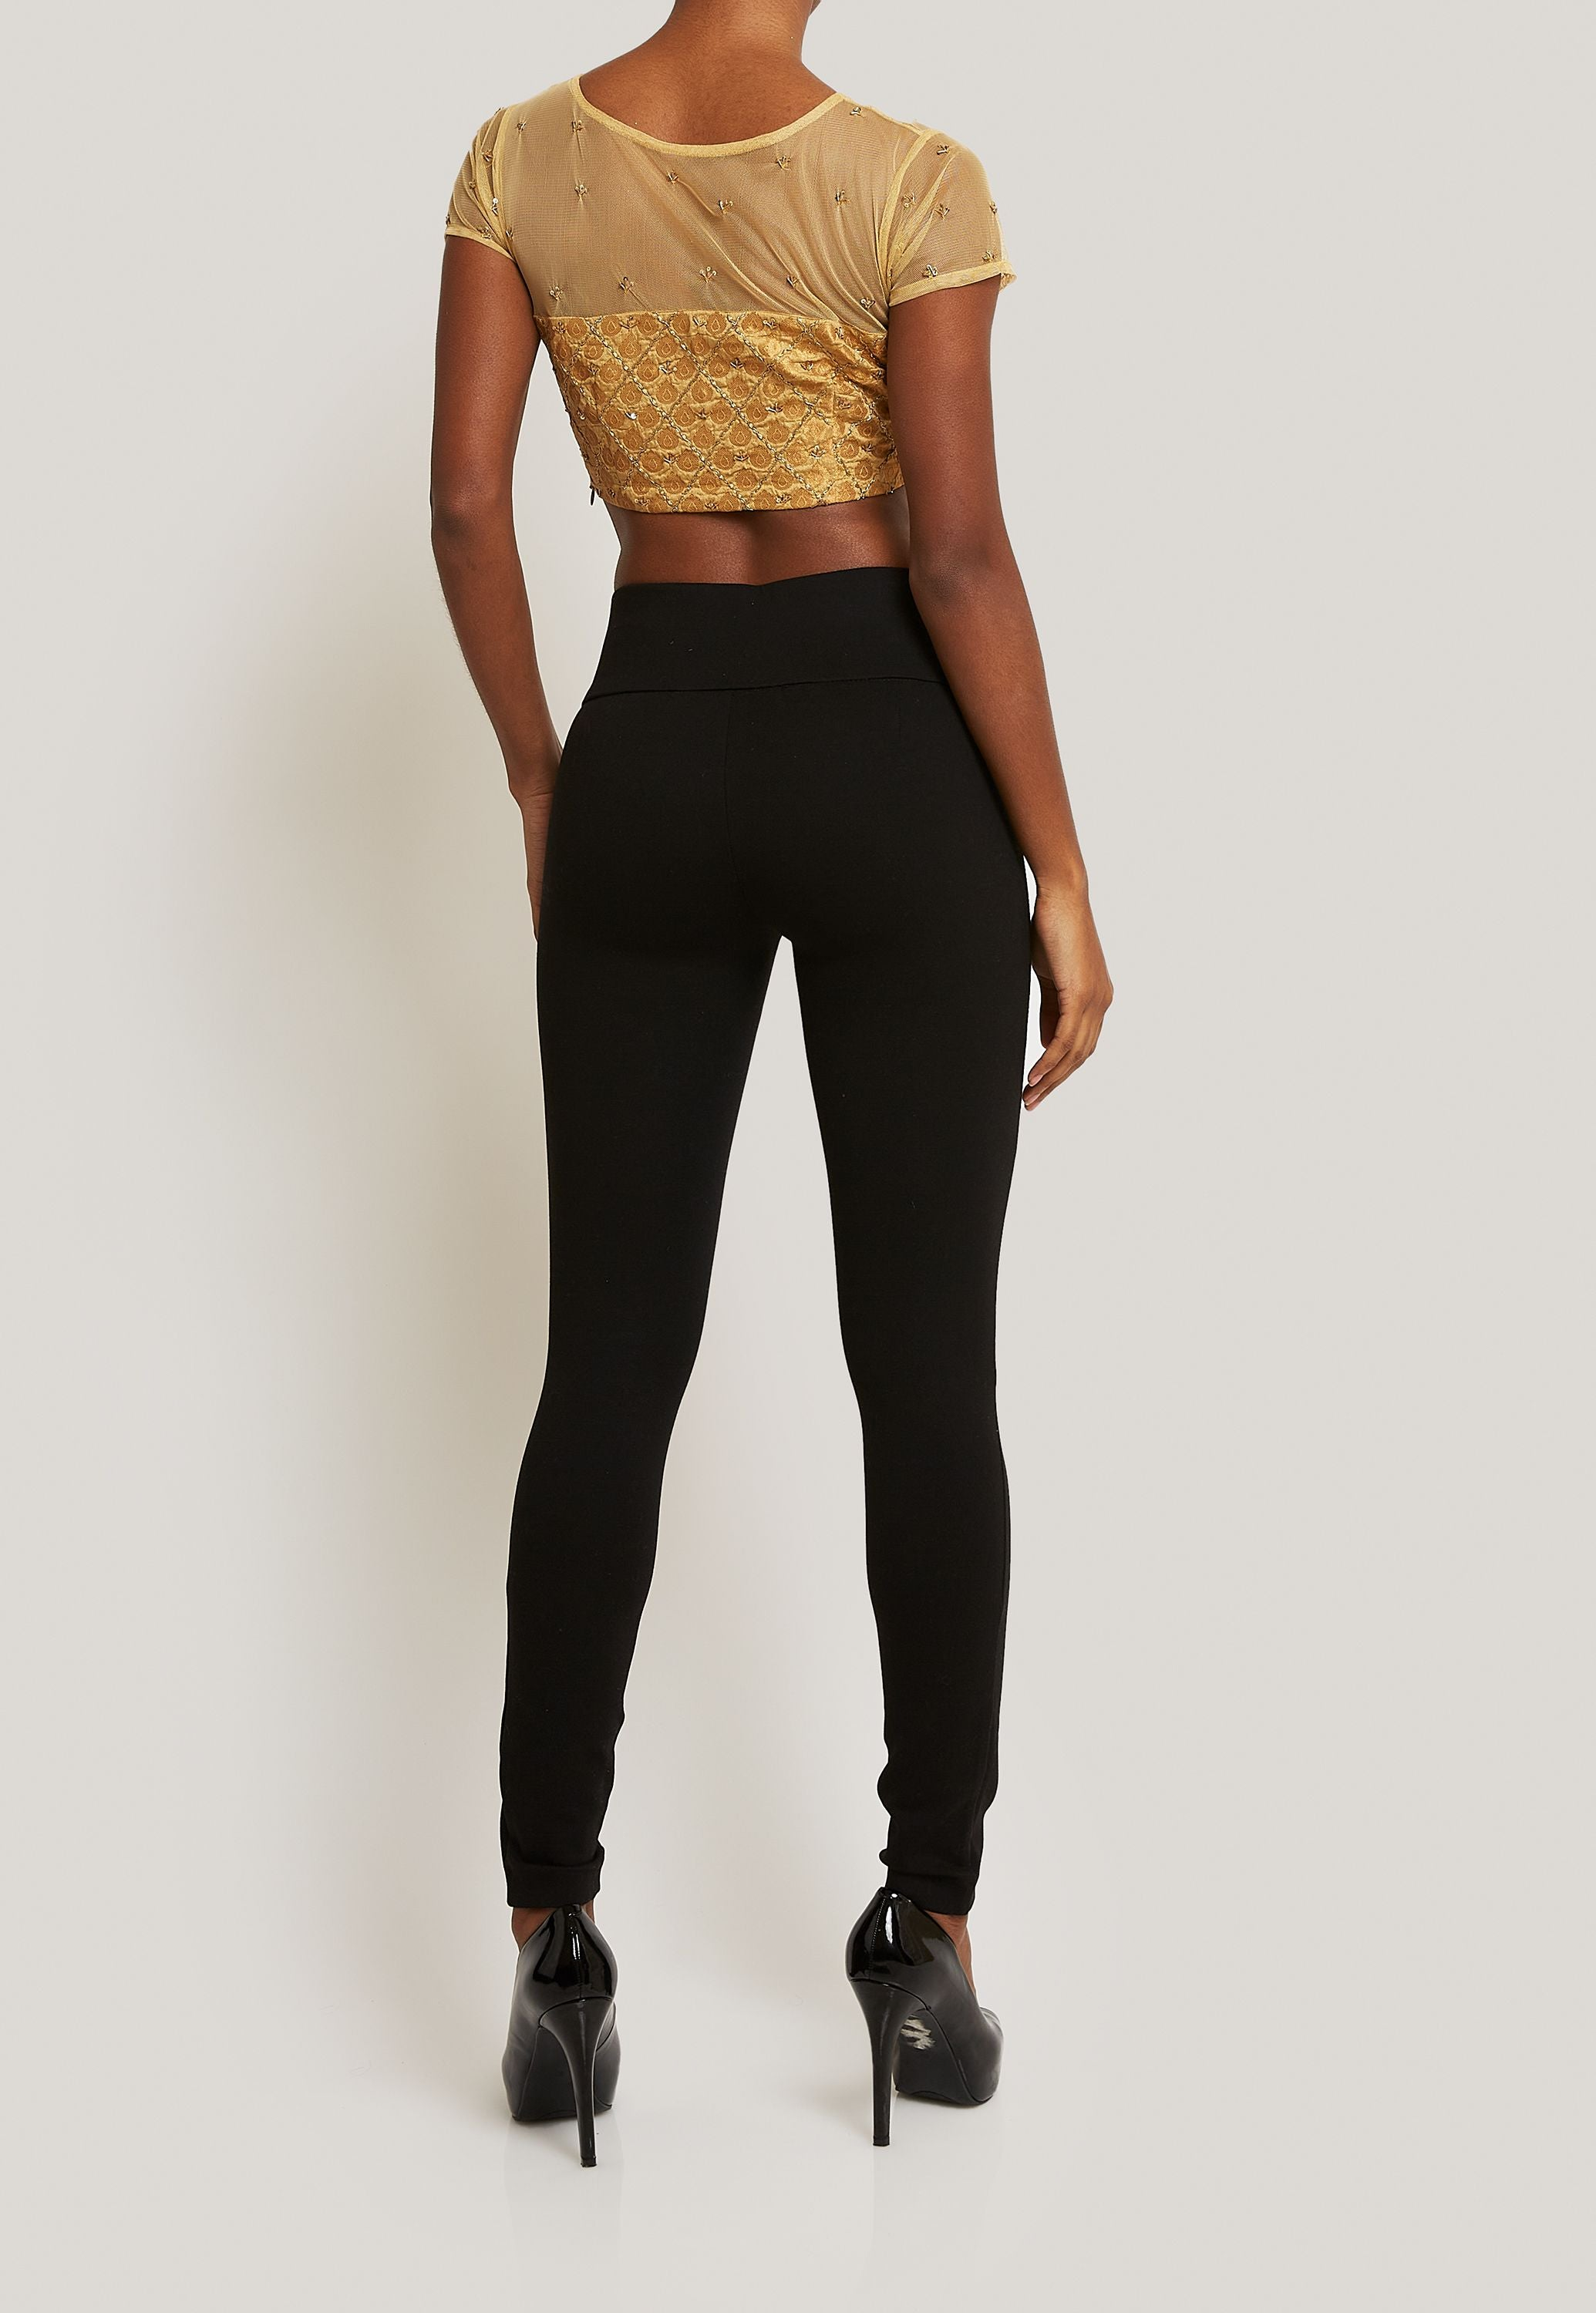 GOLD BLOUSE WITH LATTICE PATTERN AND SHEER DETAIL